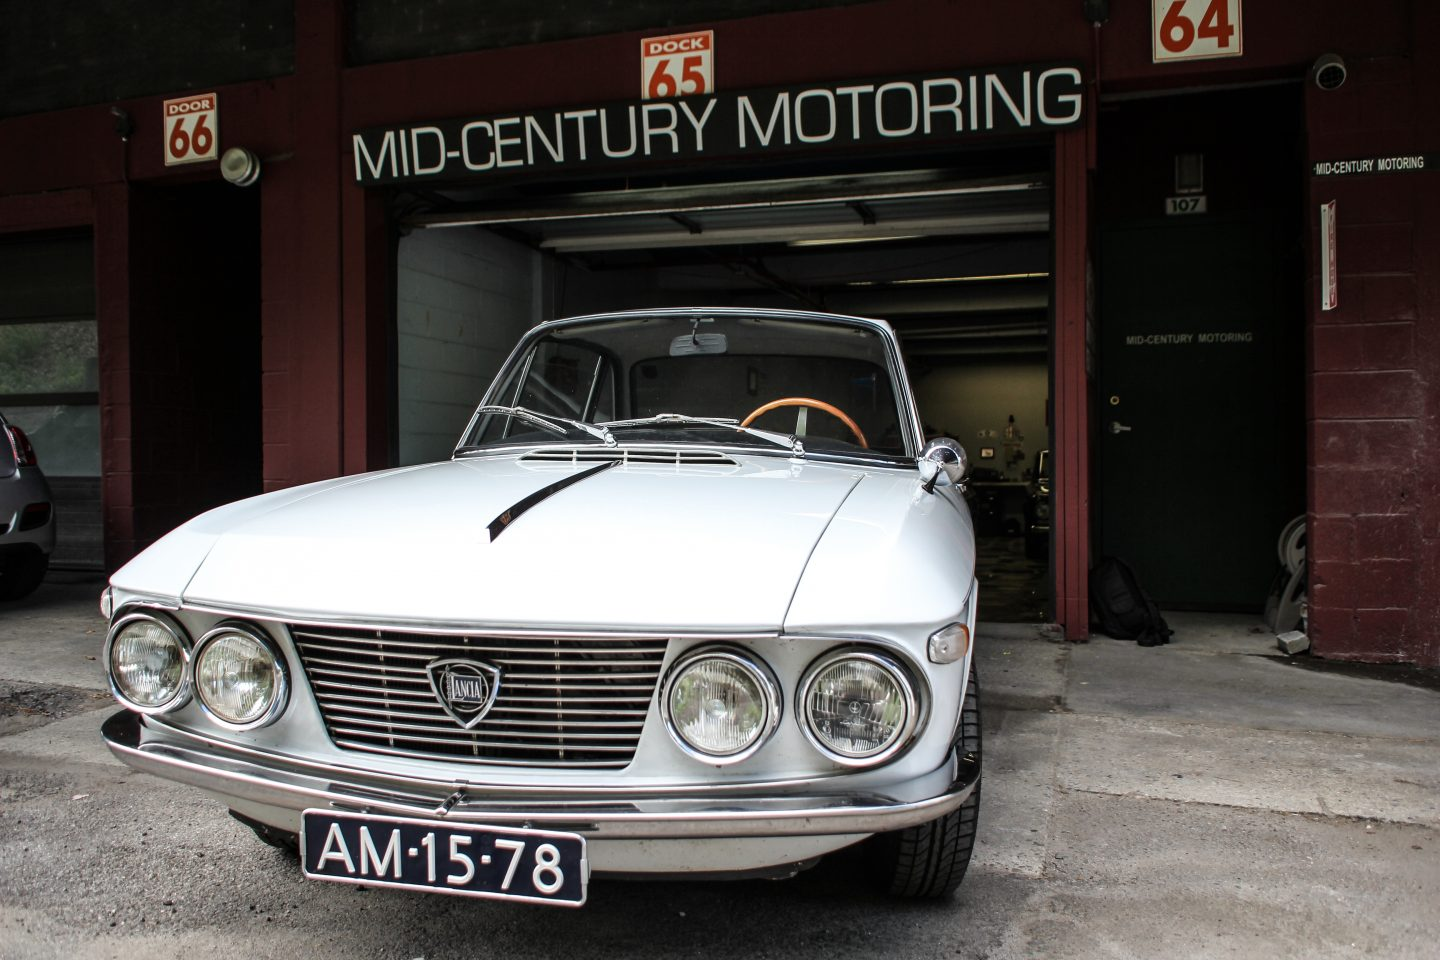 Mid-Century Motoring Is The Next Generation of Classic Car Sales